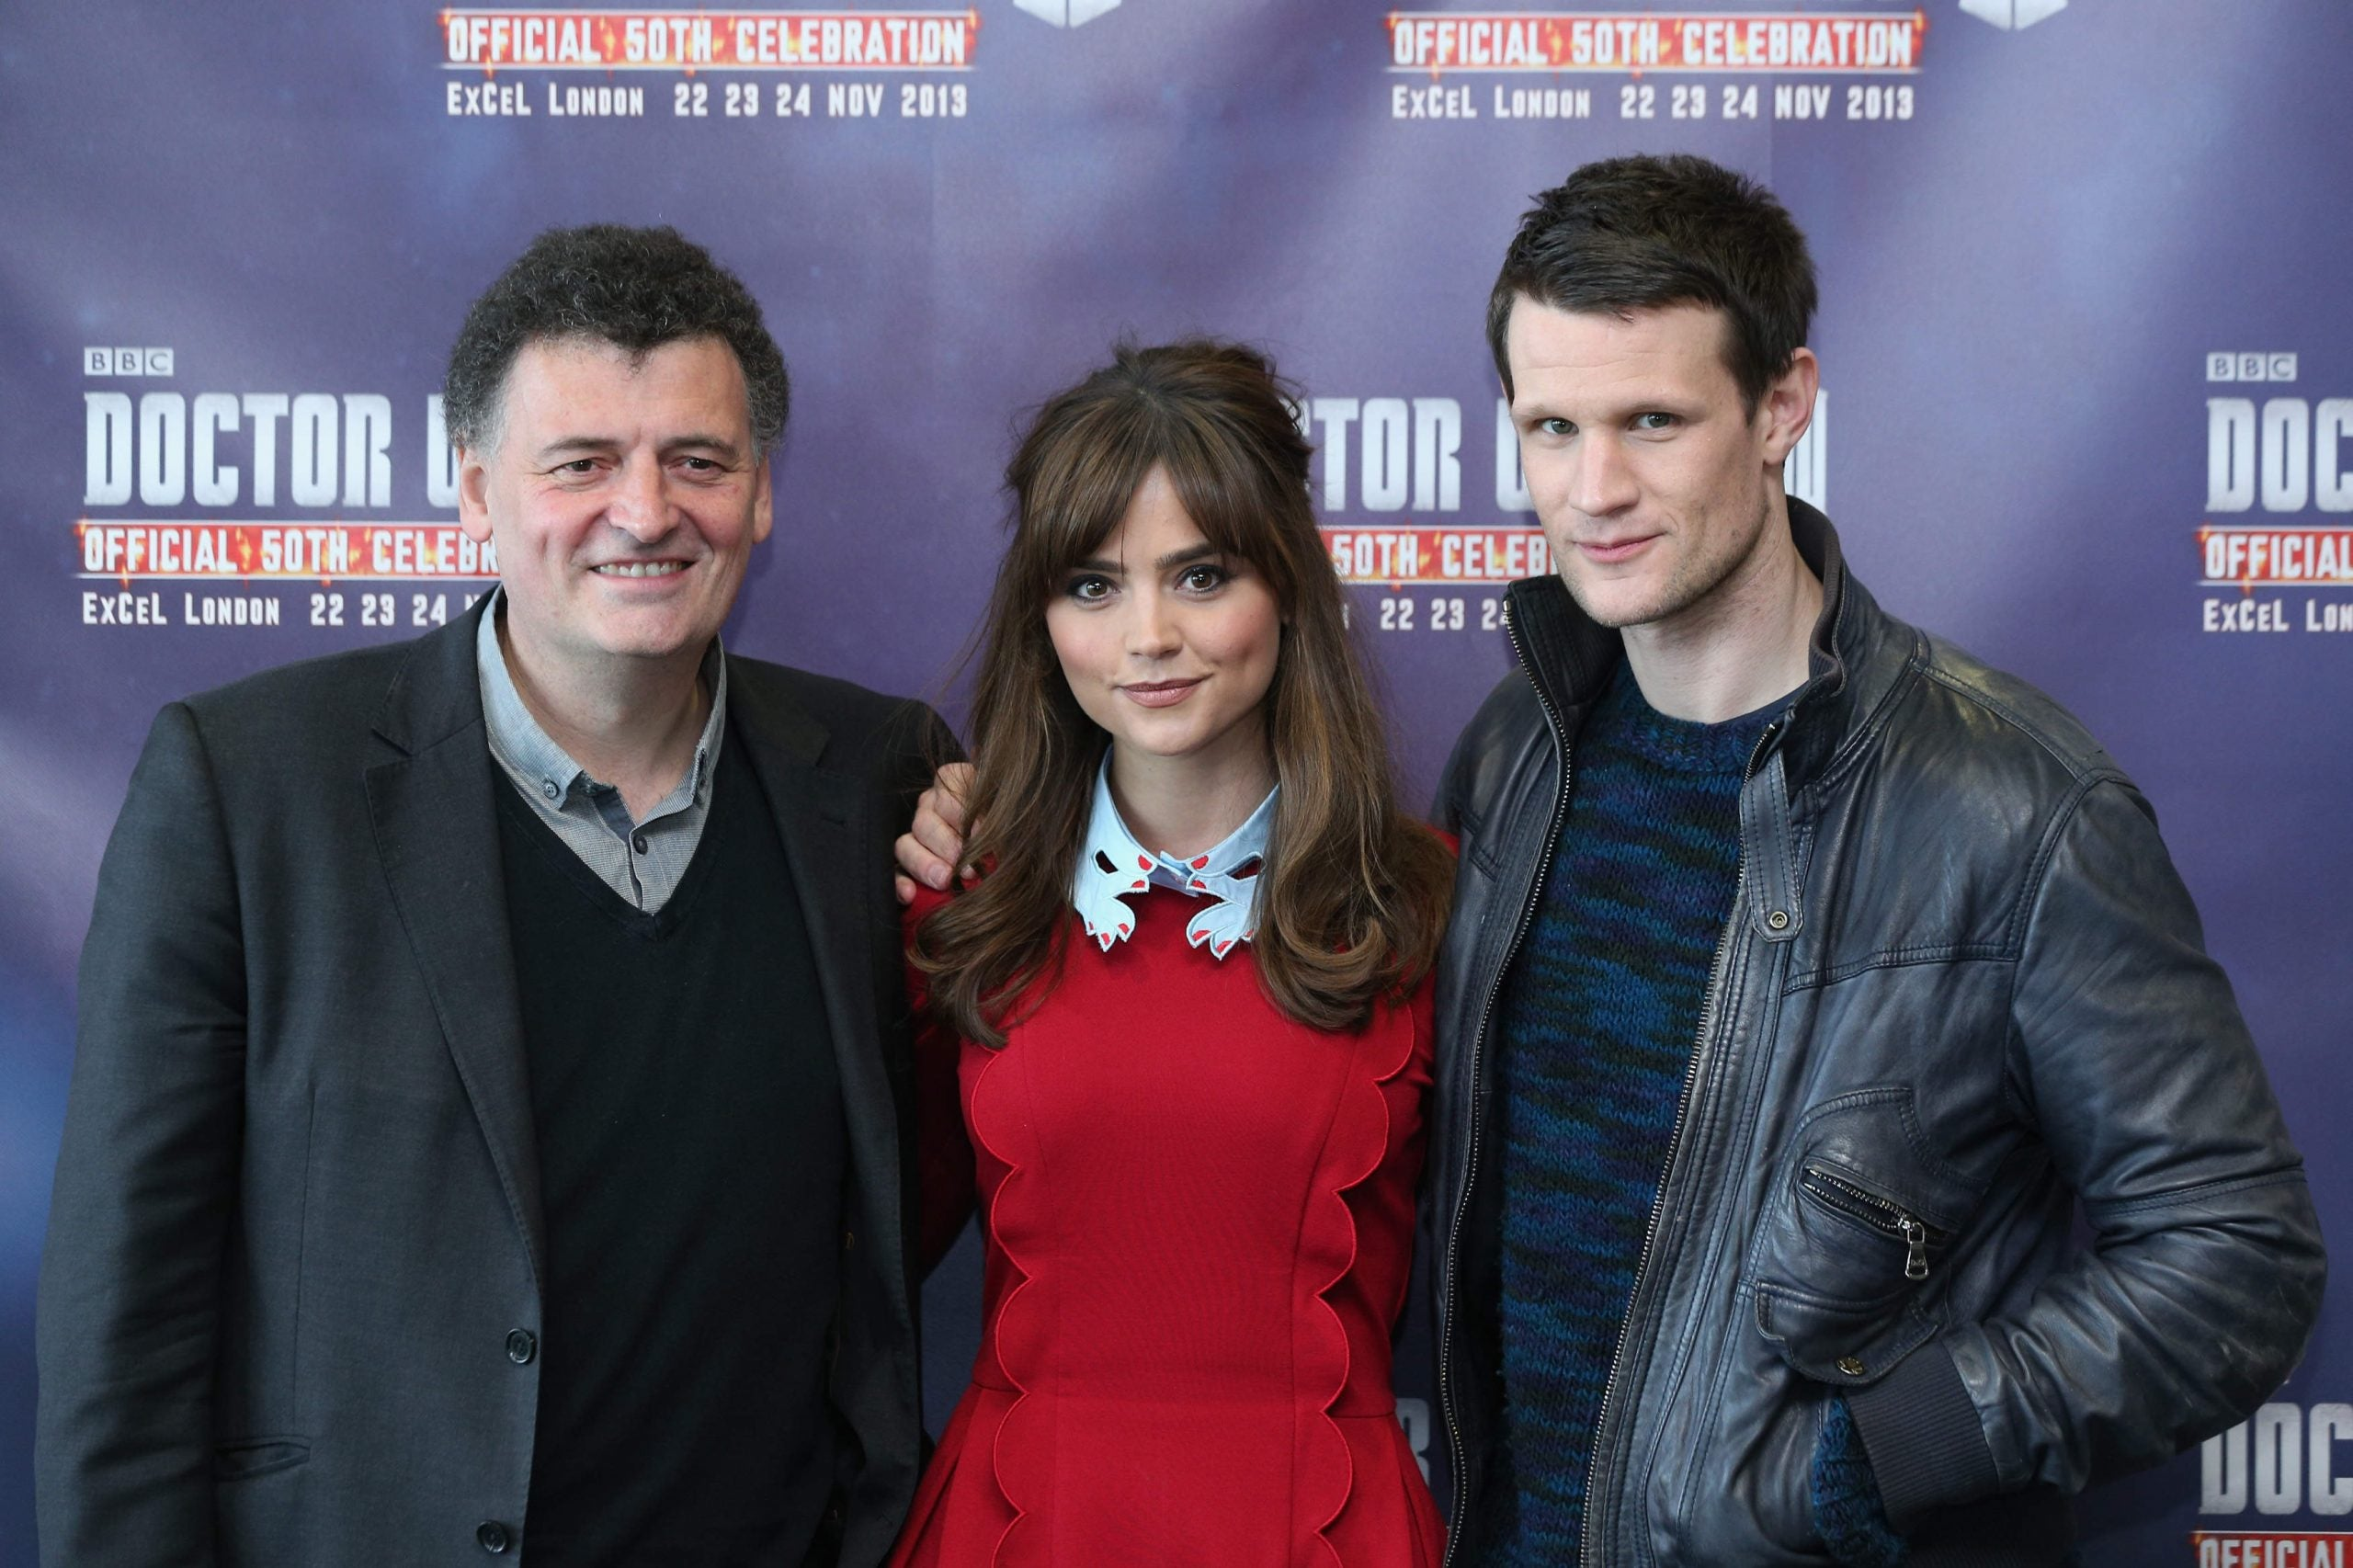 Steven Moffat has produced some great Doctor Who. So how did he become so hated?